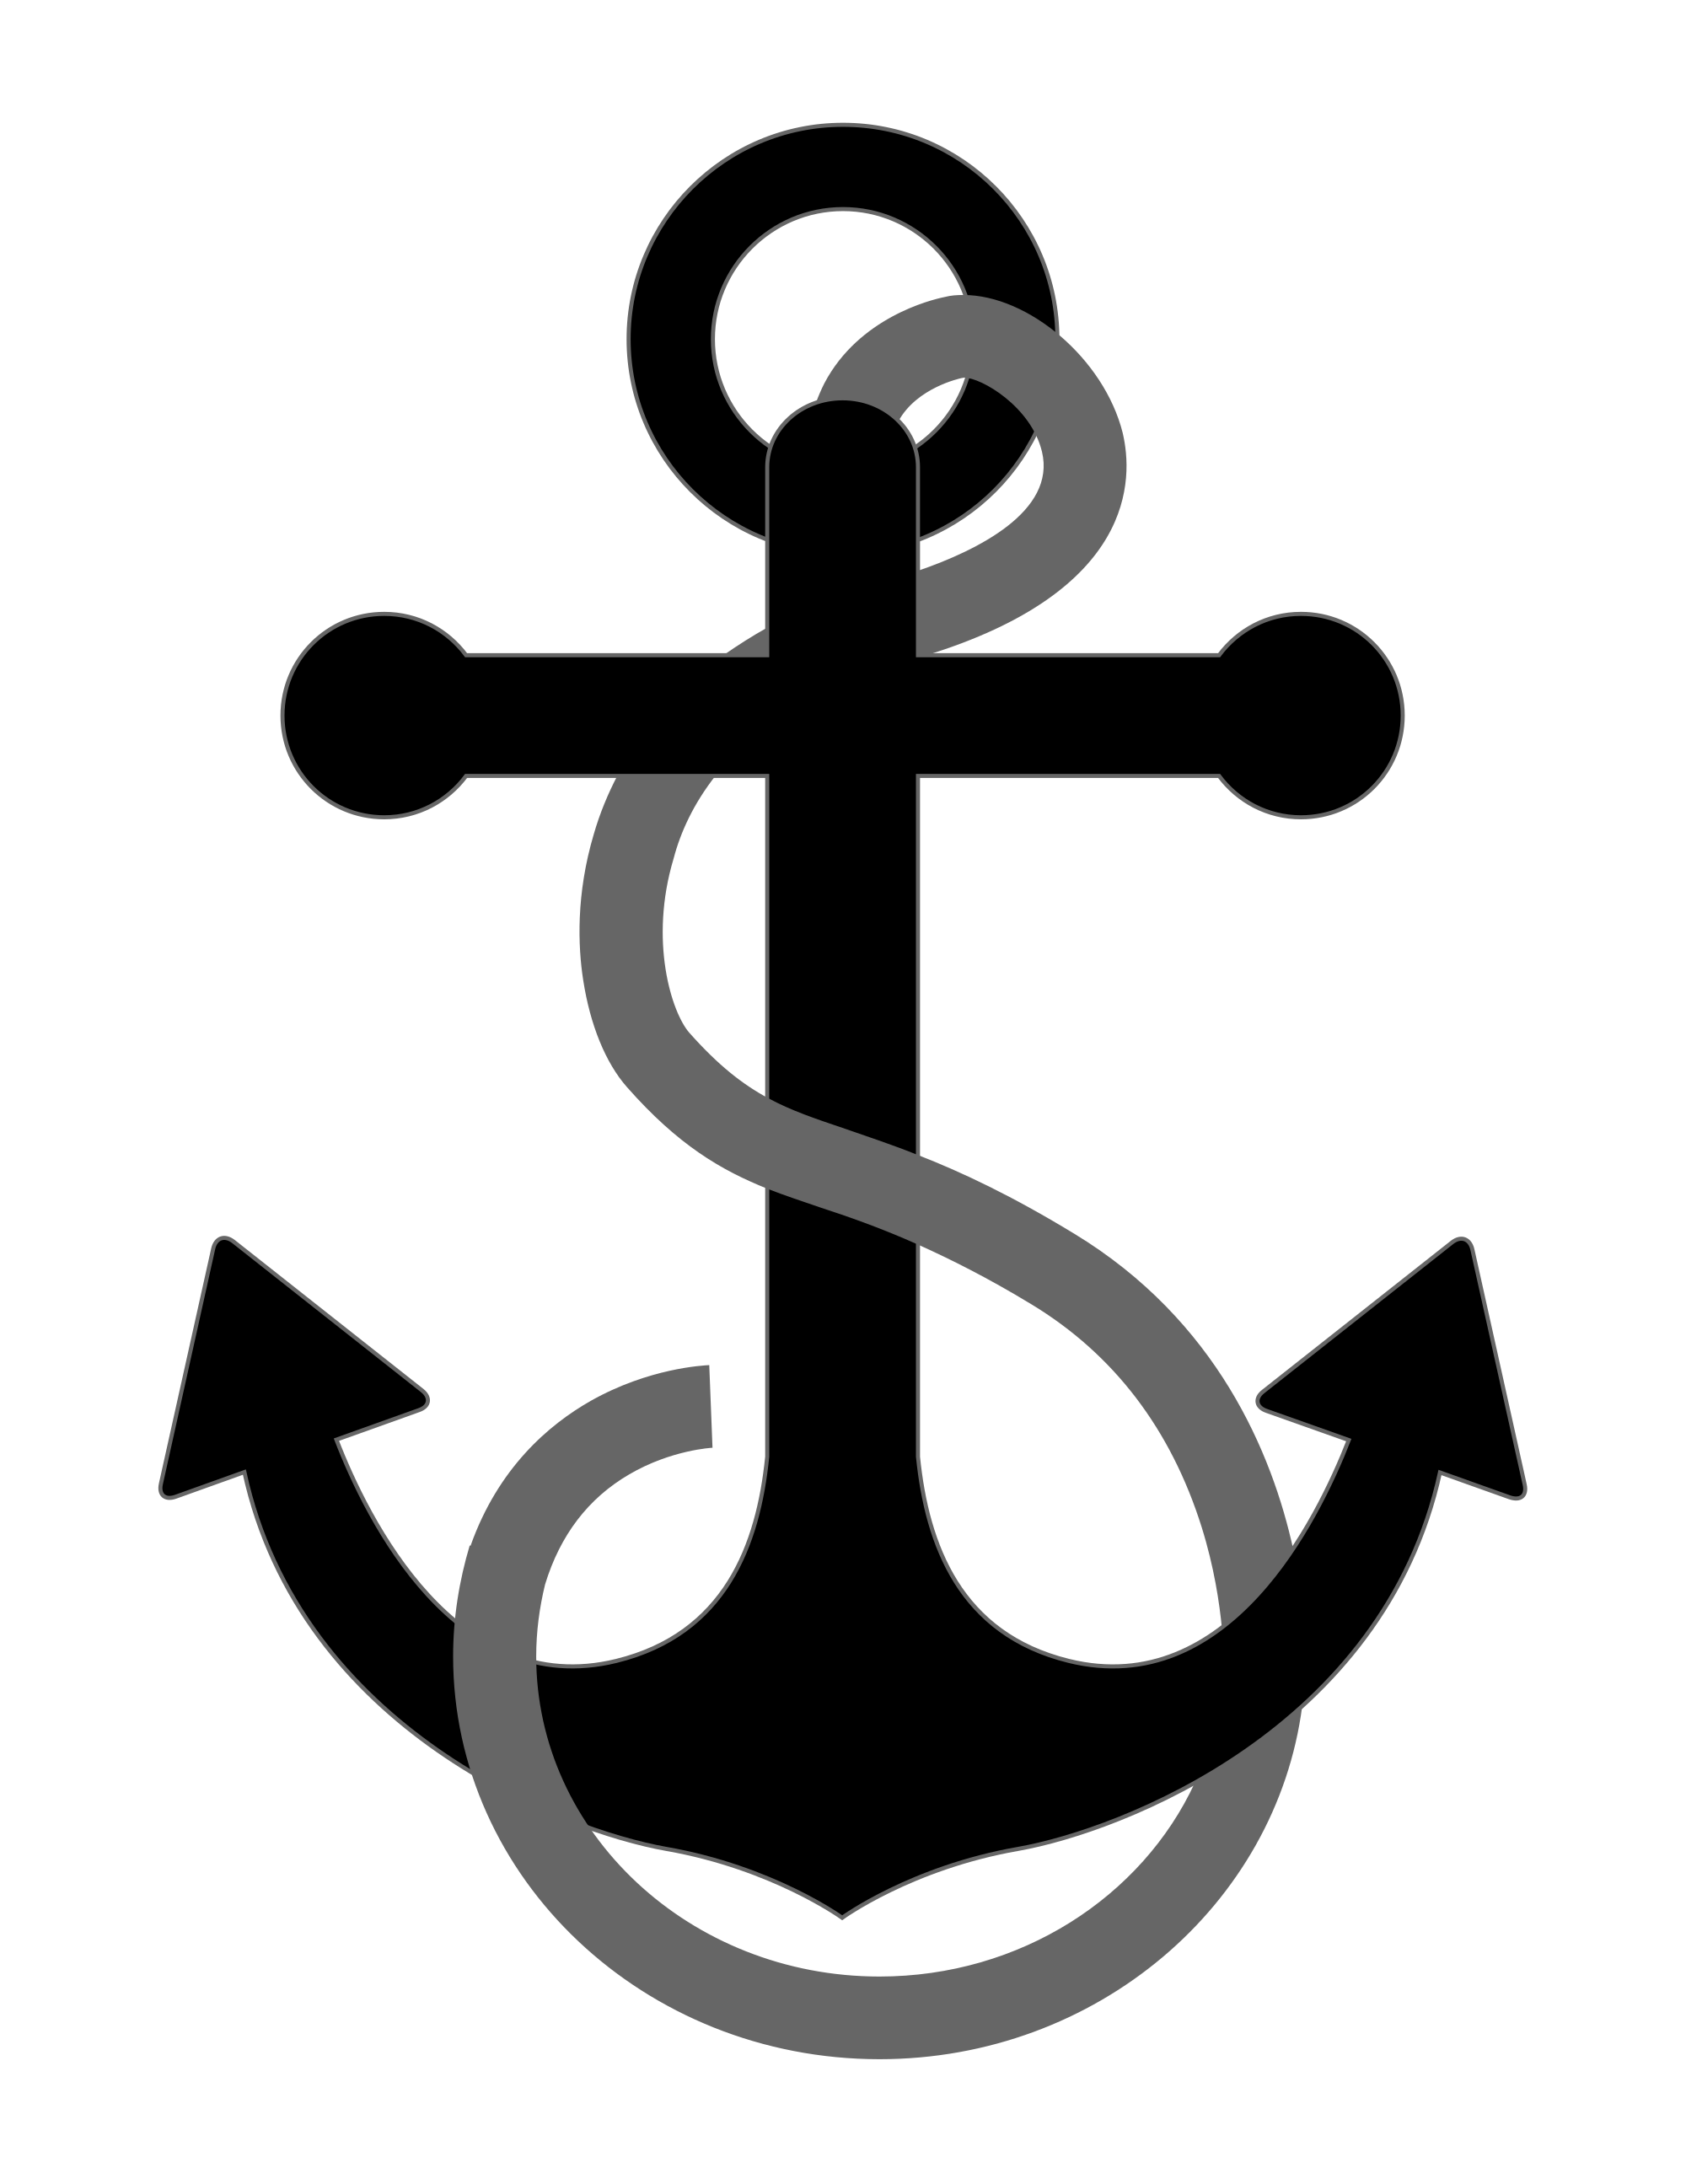 Clipart anchor svg. File with cable wikimedia